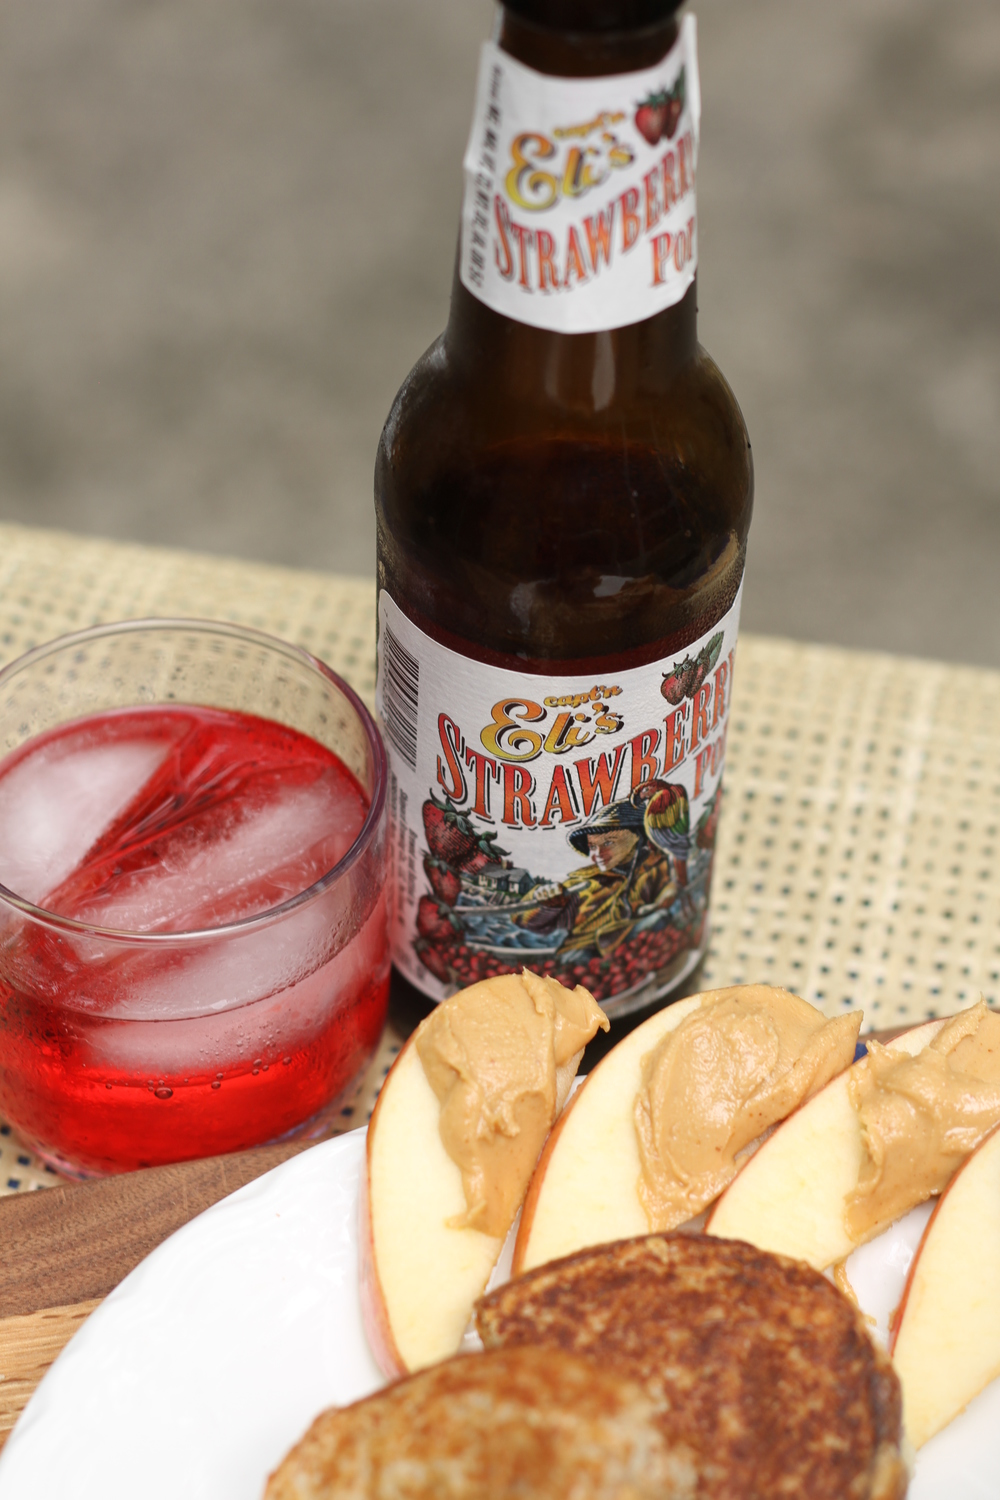 We heart Capt'n Eli's strawberry soda! We like blueberry too!